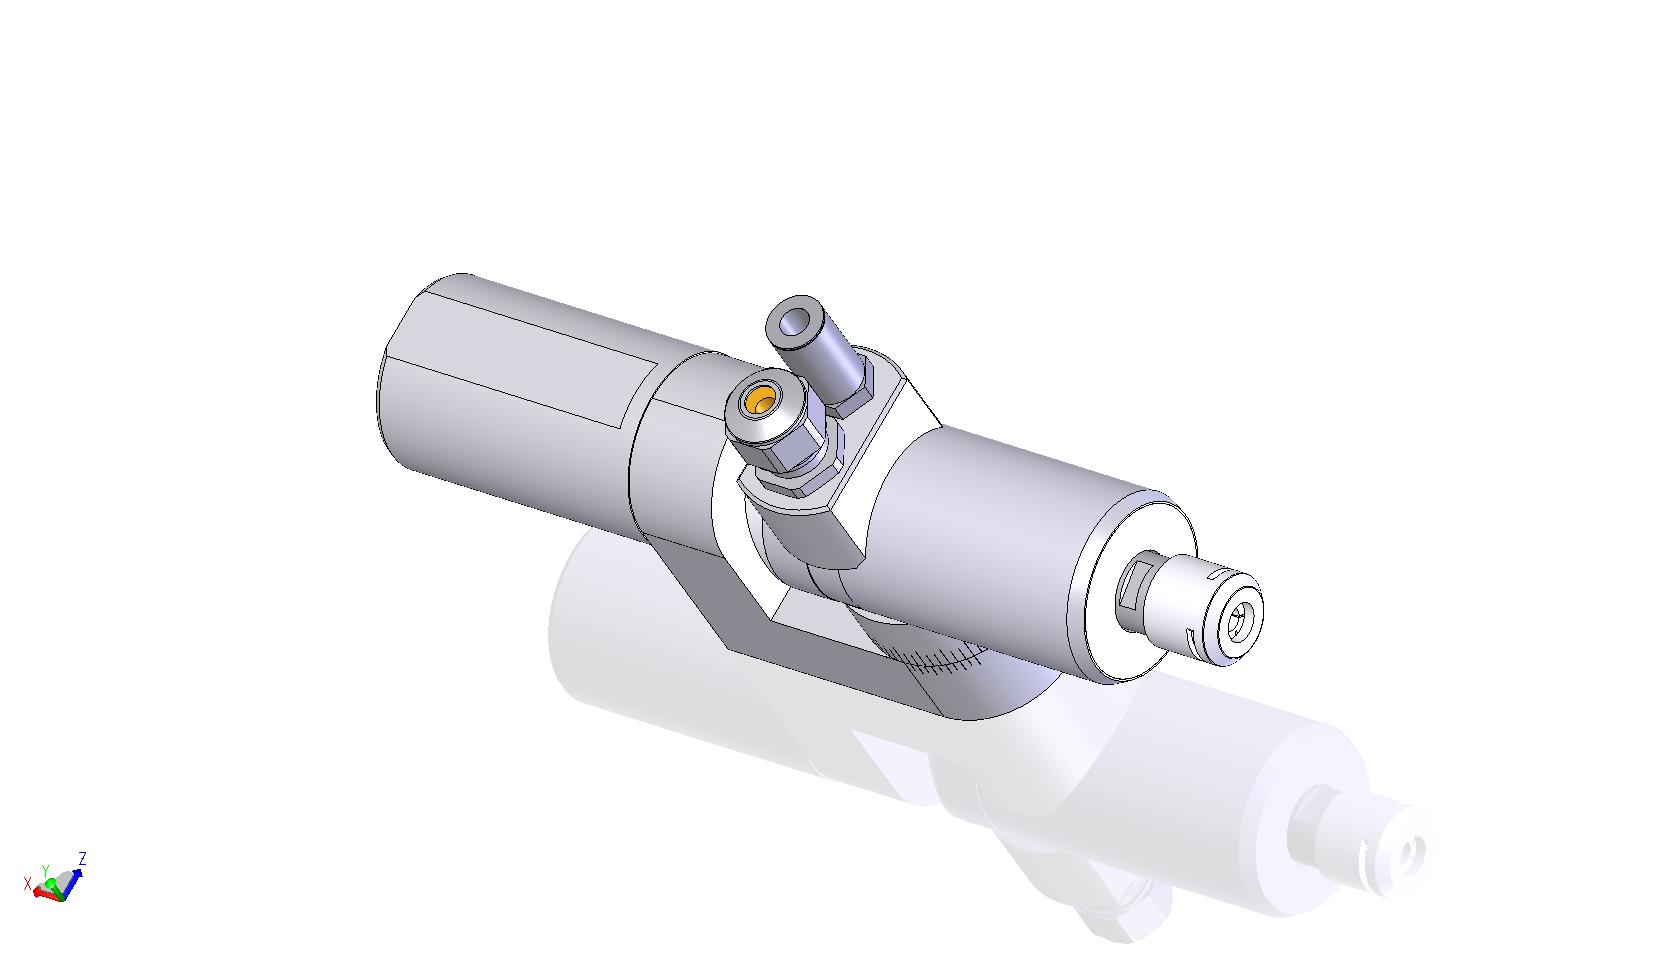 HT 25 S 60 CS - adjustable angle with 90° connector